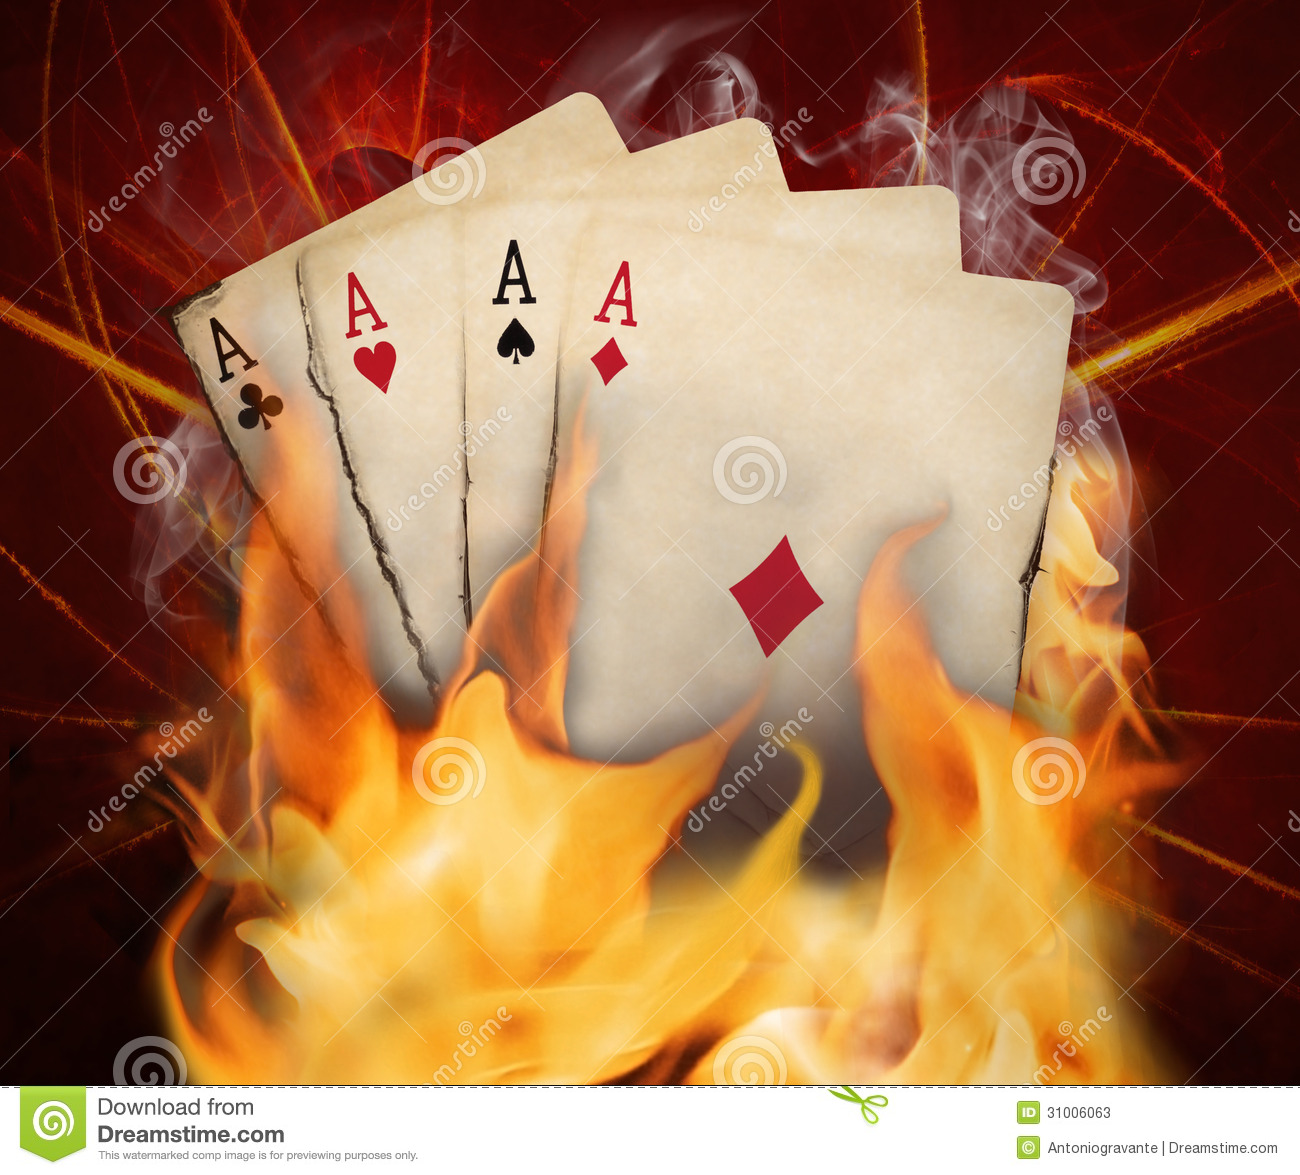 Poker Cards Burn In The Fire Stock Image - Image: 31006063